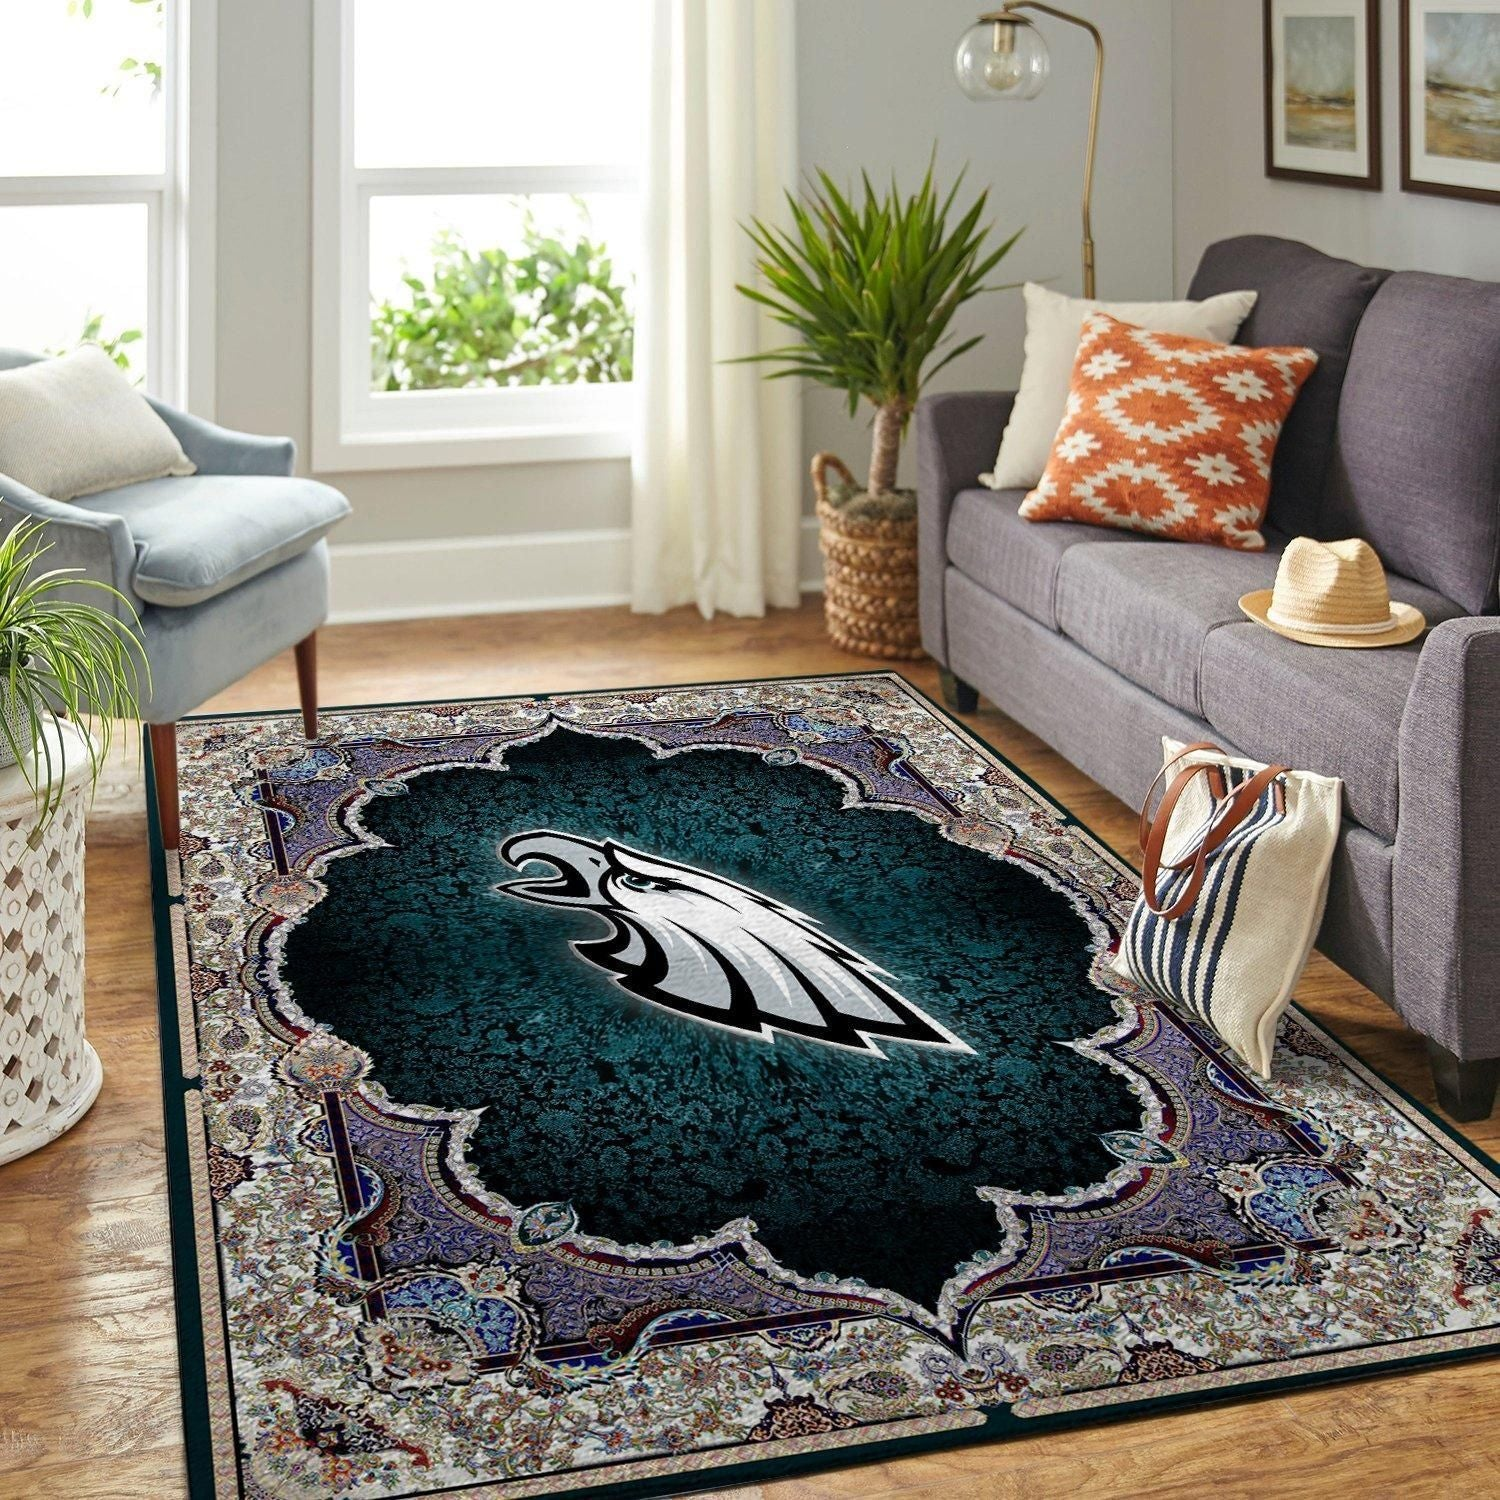 Philadelphia Eagles Area Rugs NFL Football Team Living Room Carpet Carpet Sport Custom Area Floor Home Decor